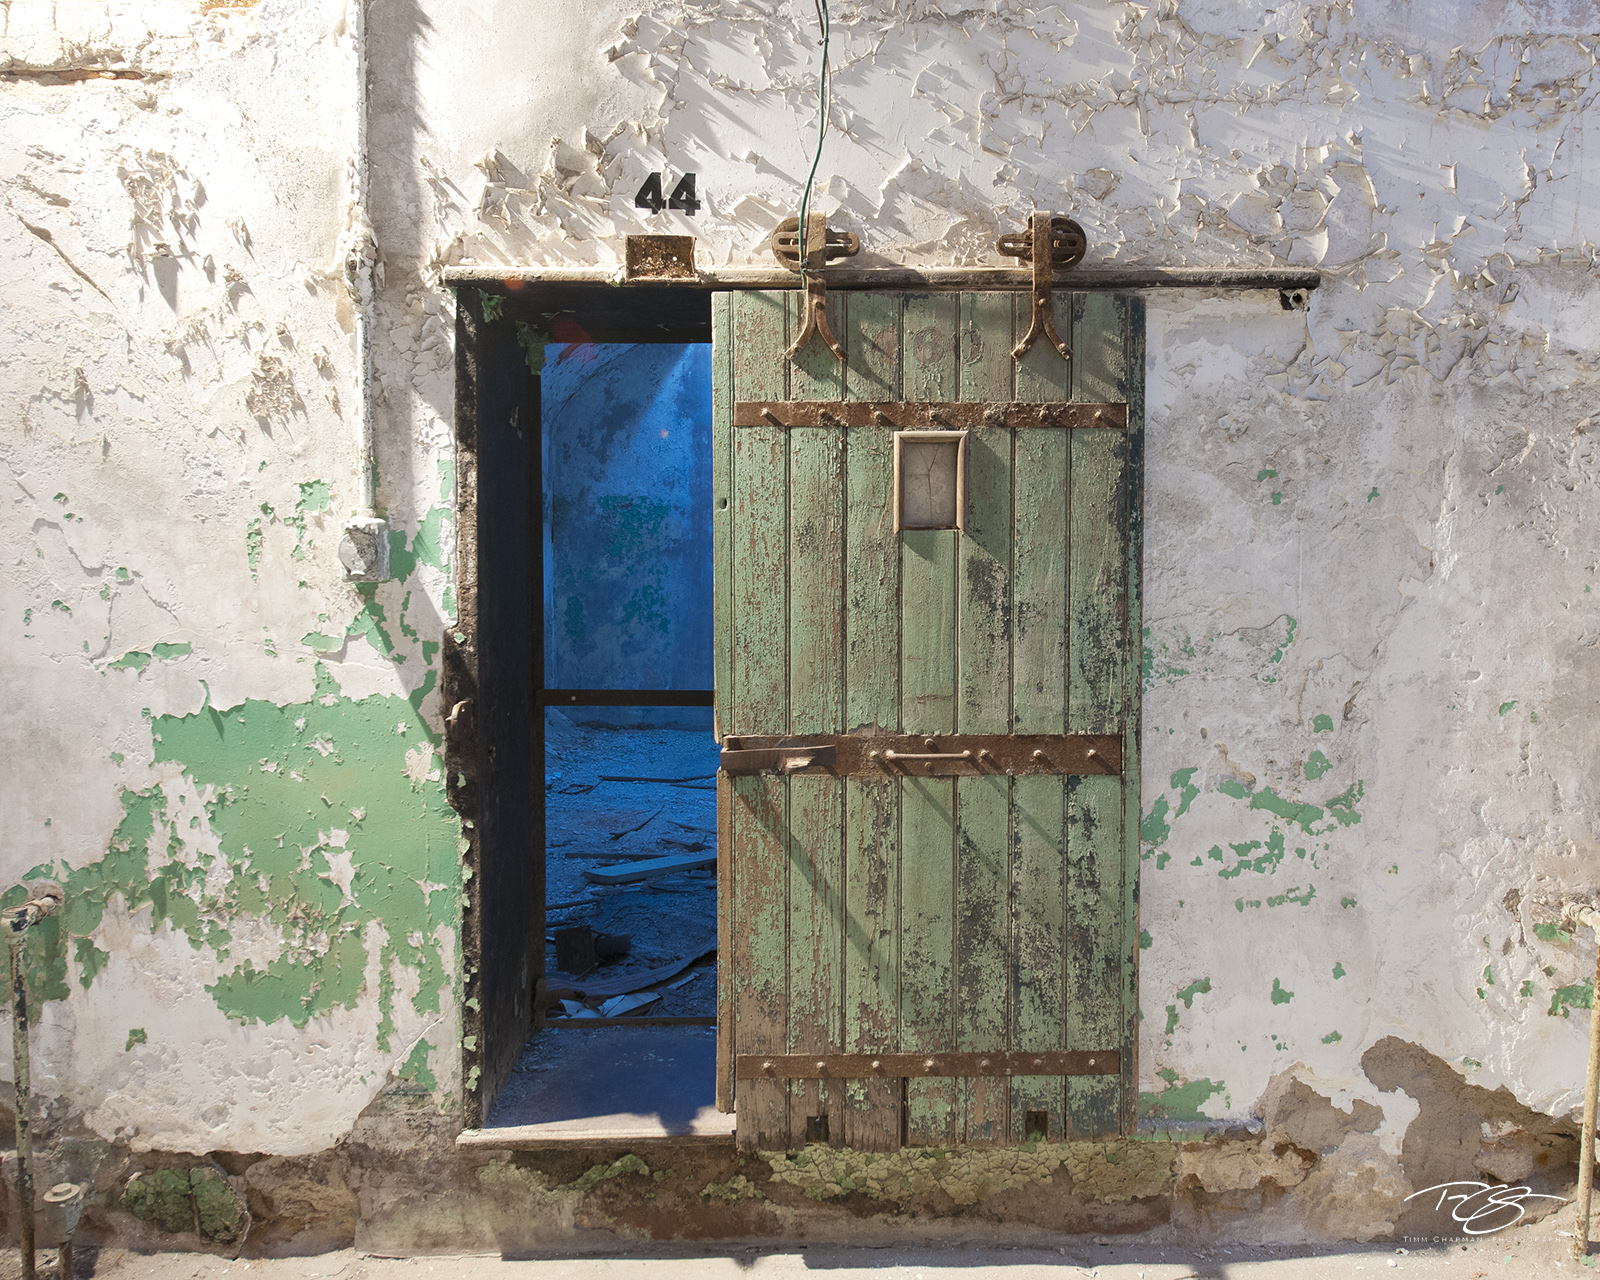 cell, cell block, peeling paint, paint, green, blue, reclamation, collapse, jail, prison, door, penitentiary, eastern state, corridor, dingy, abandoned, debris, old, dark